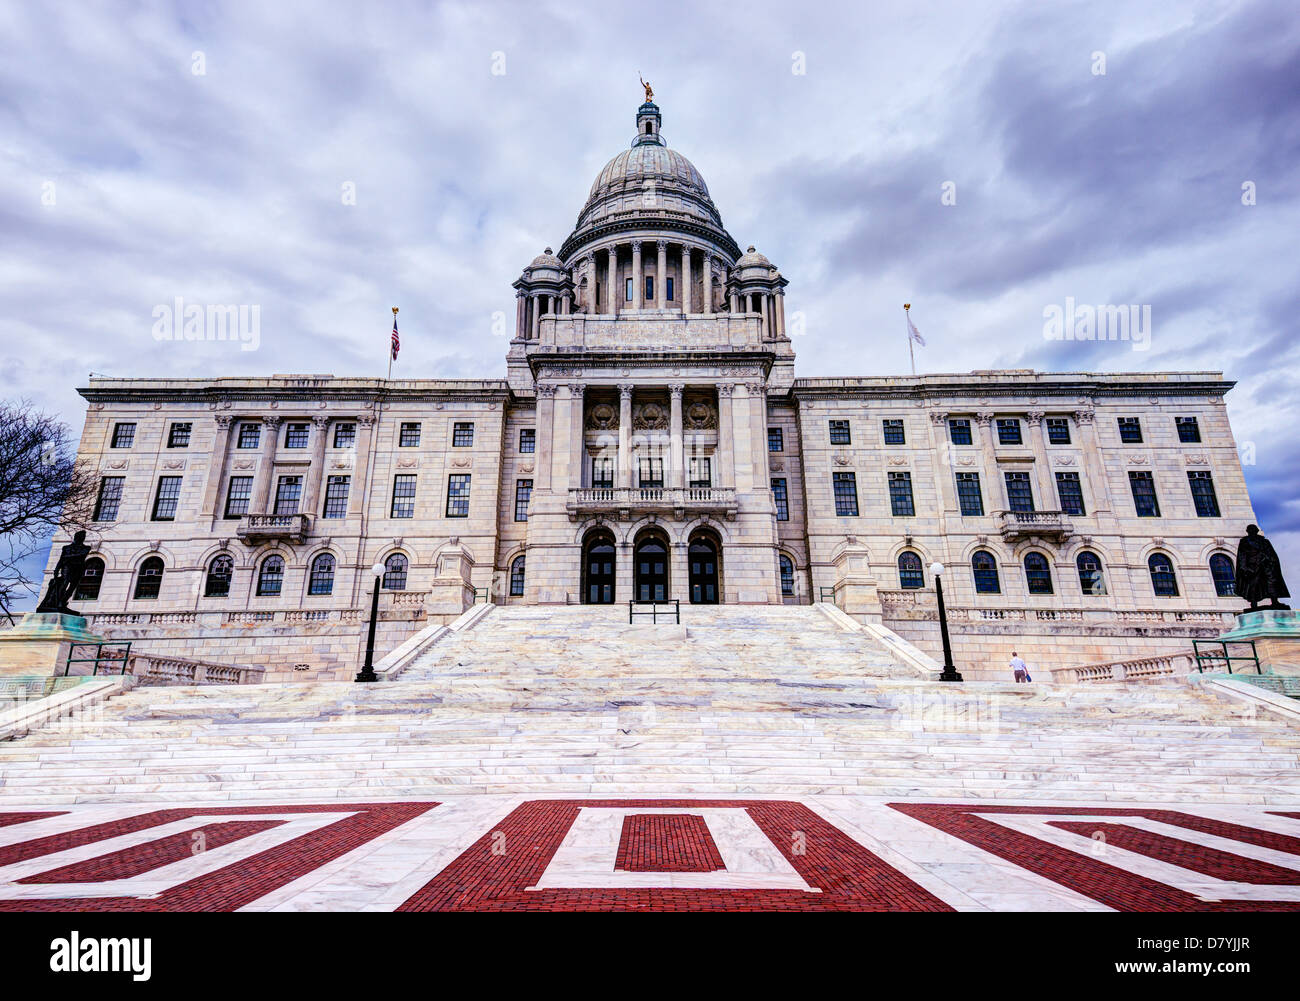 Rhode Island State House à Providence, Rhode Island. Banque D'Images